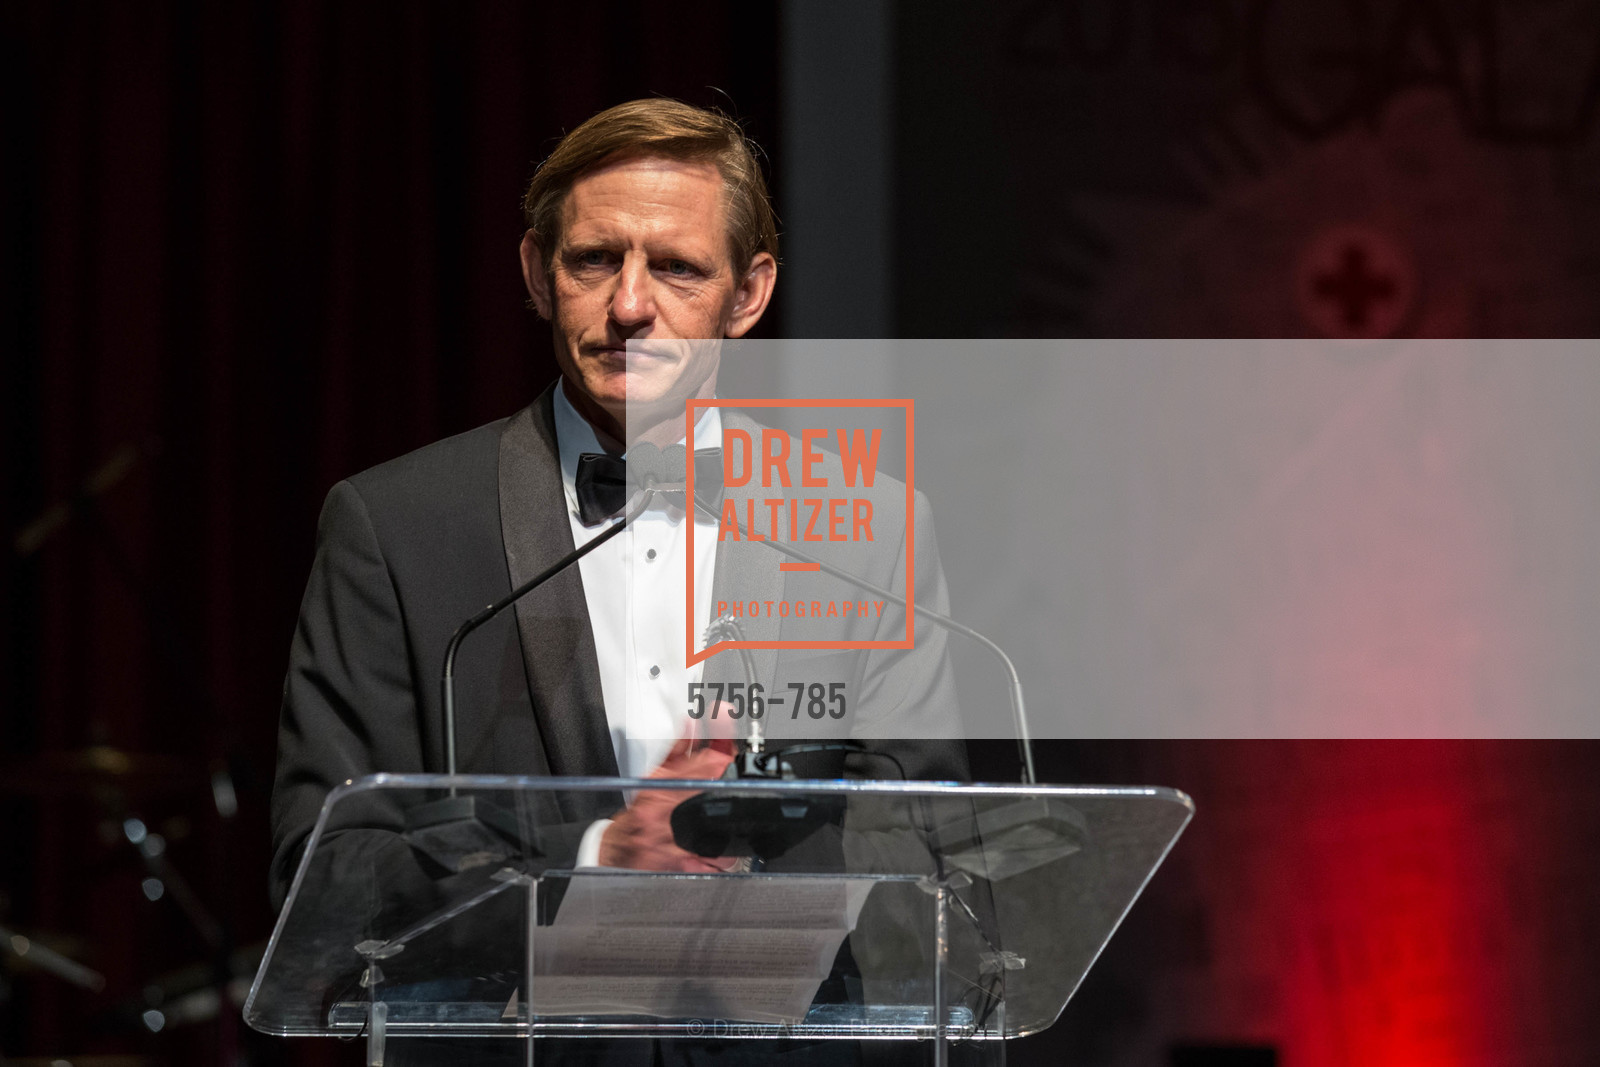 John Styslinger, 2015 RED CROSS Gala, US, April 12th, 2015,Drew Altizer, Drew Altizer Photography, full-service agency, private events, San Francisco photographer, photographer california